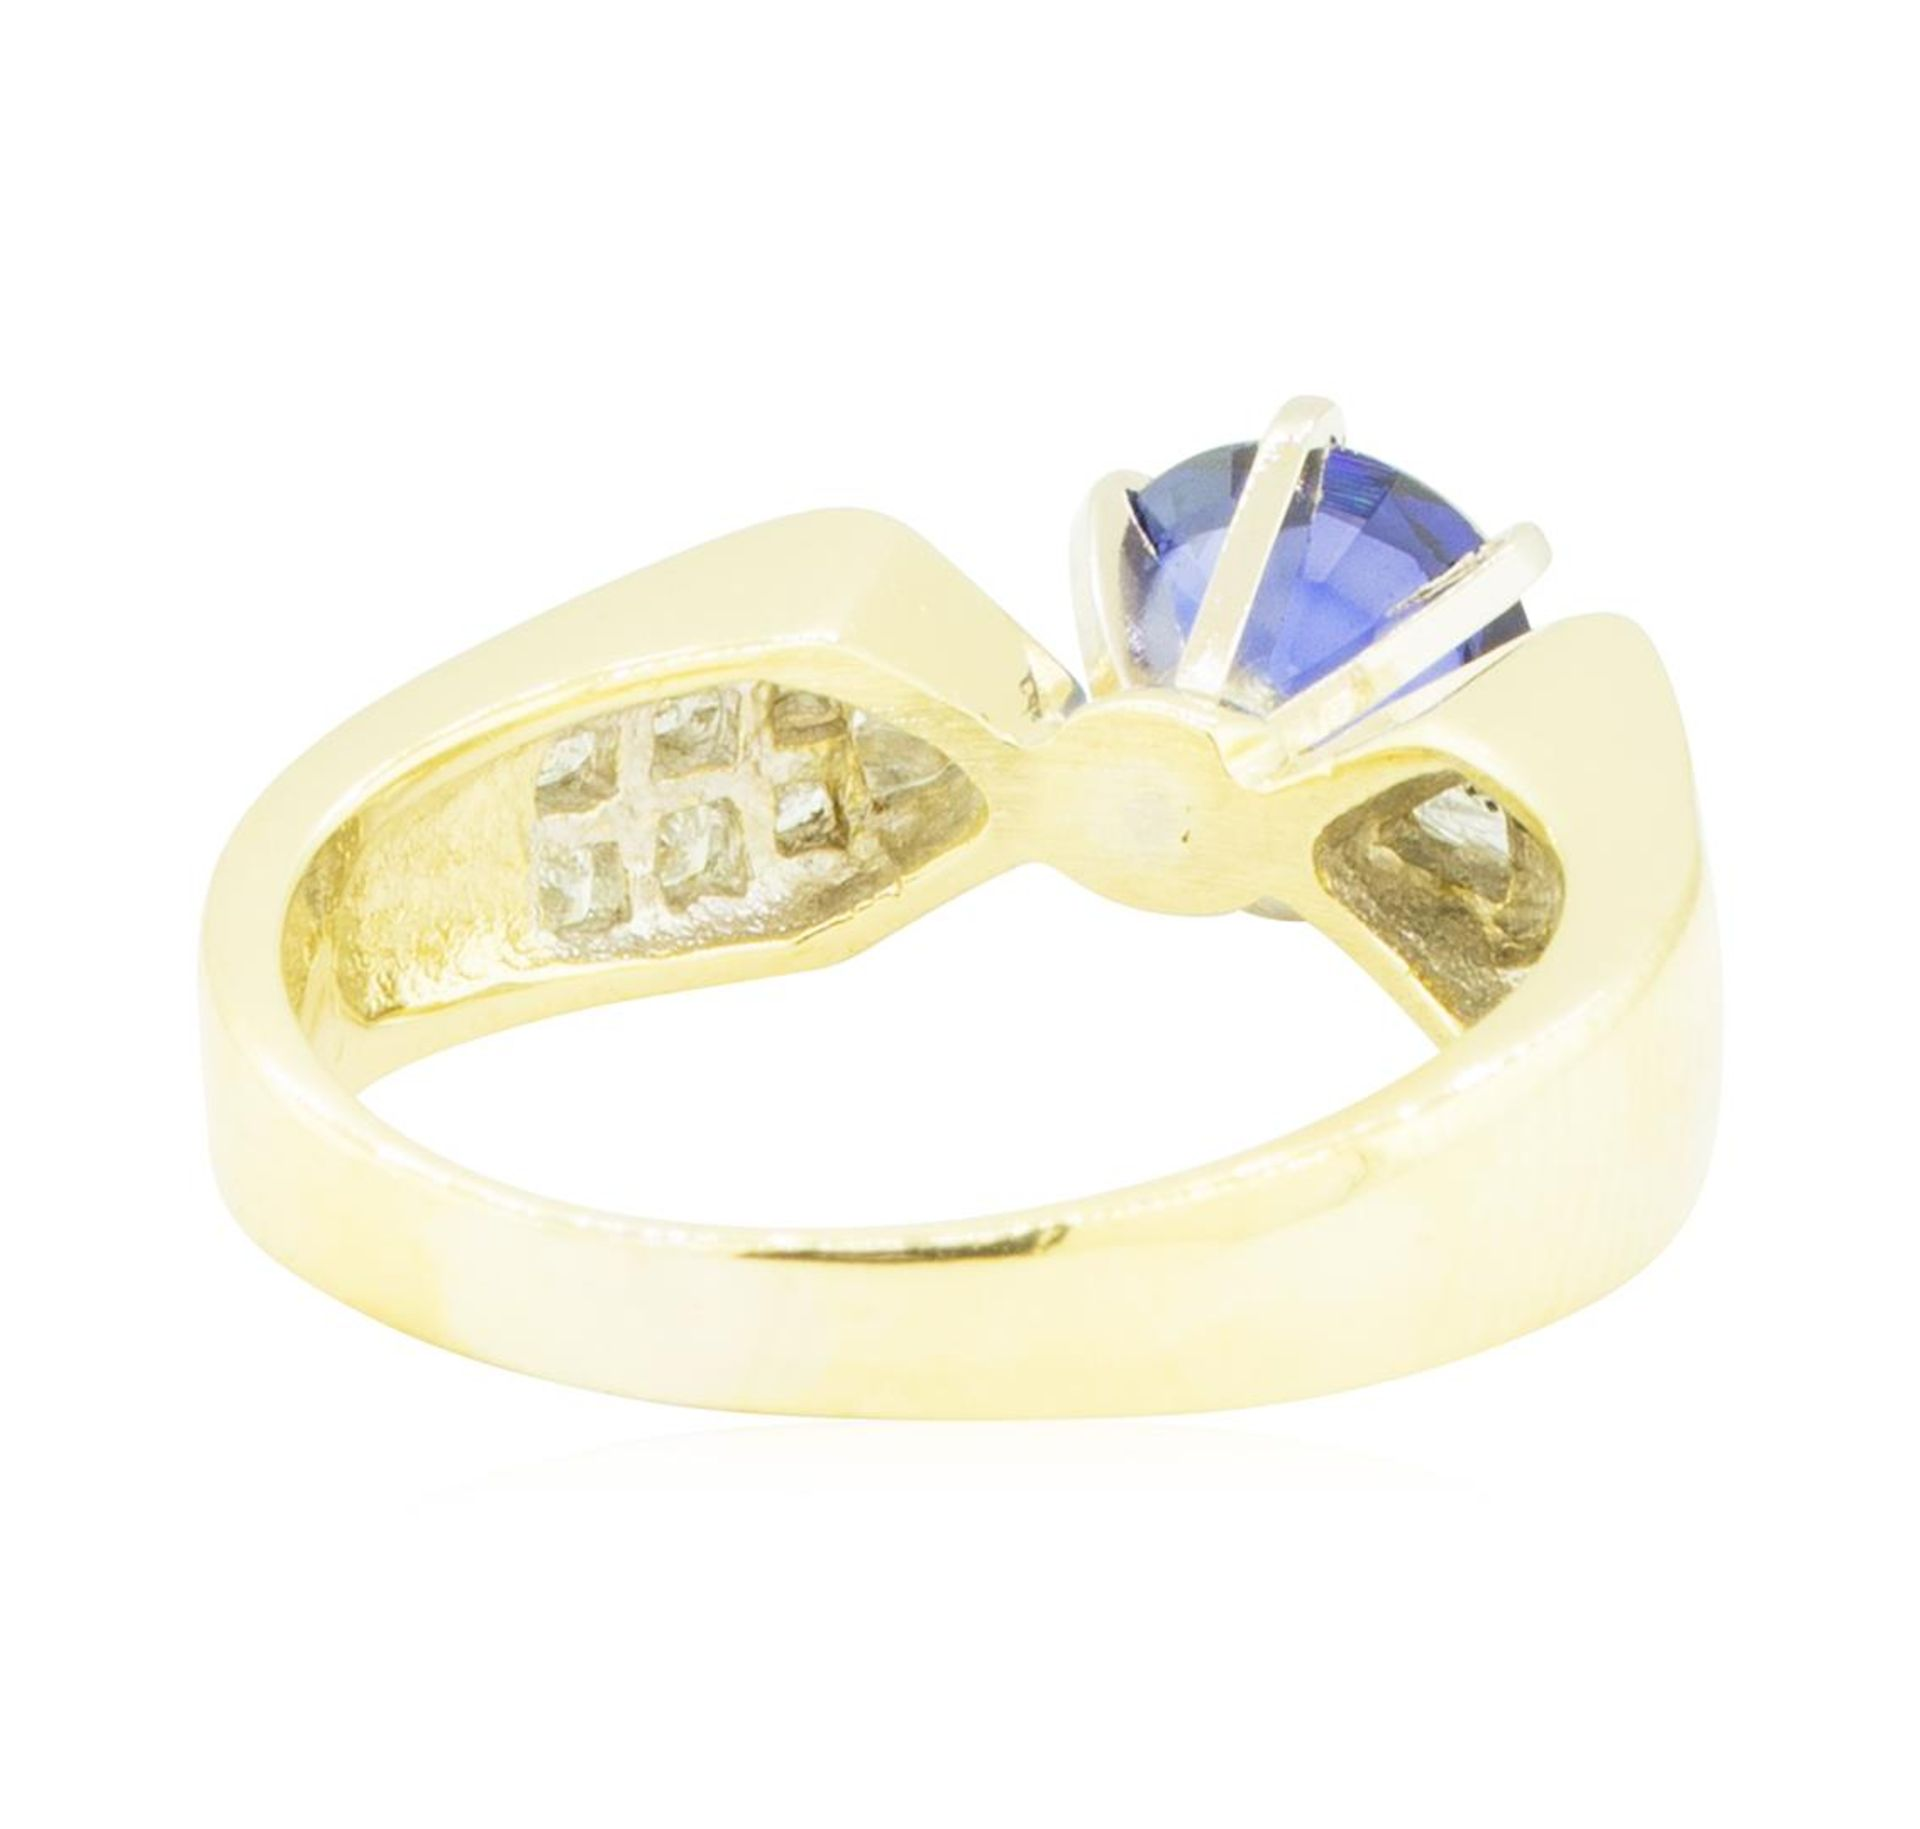 2.20 ctw Blue Sapphire and Diamond Ring - 18KT Yellow Gold - Image 3 of 4